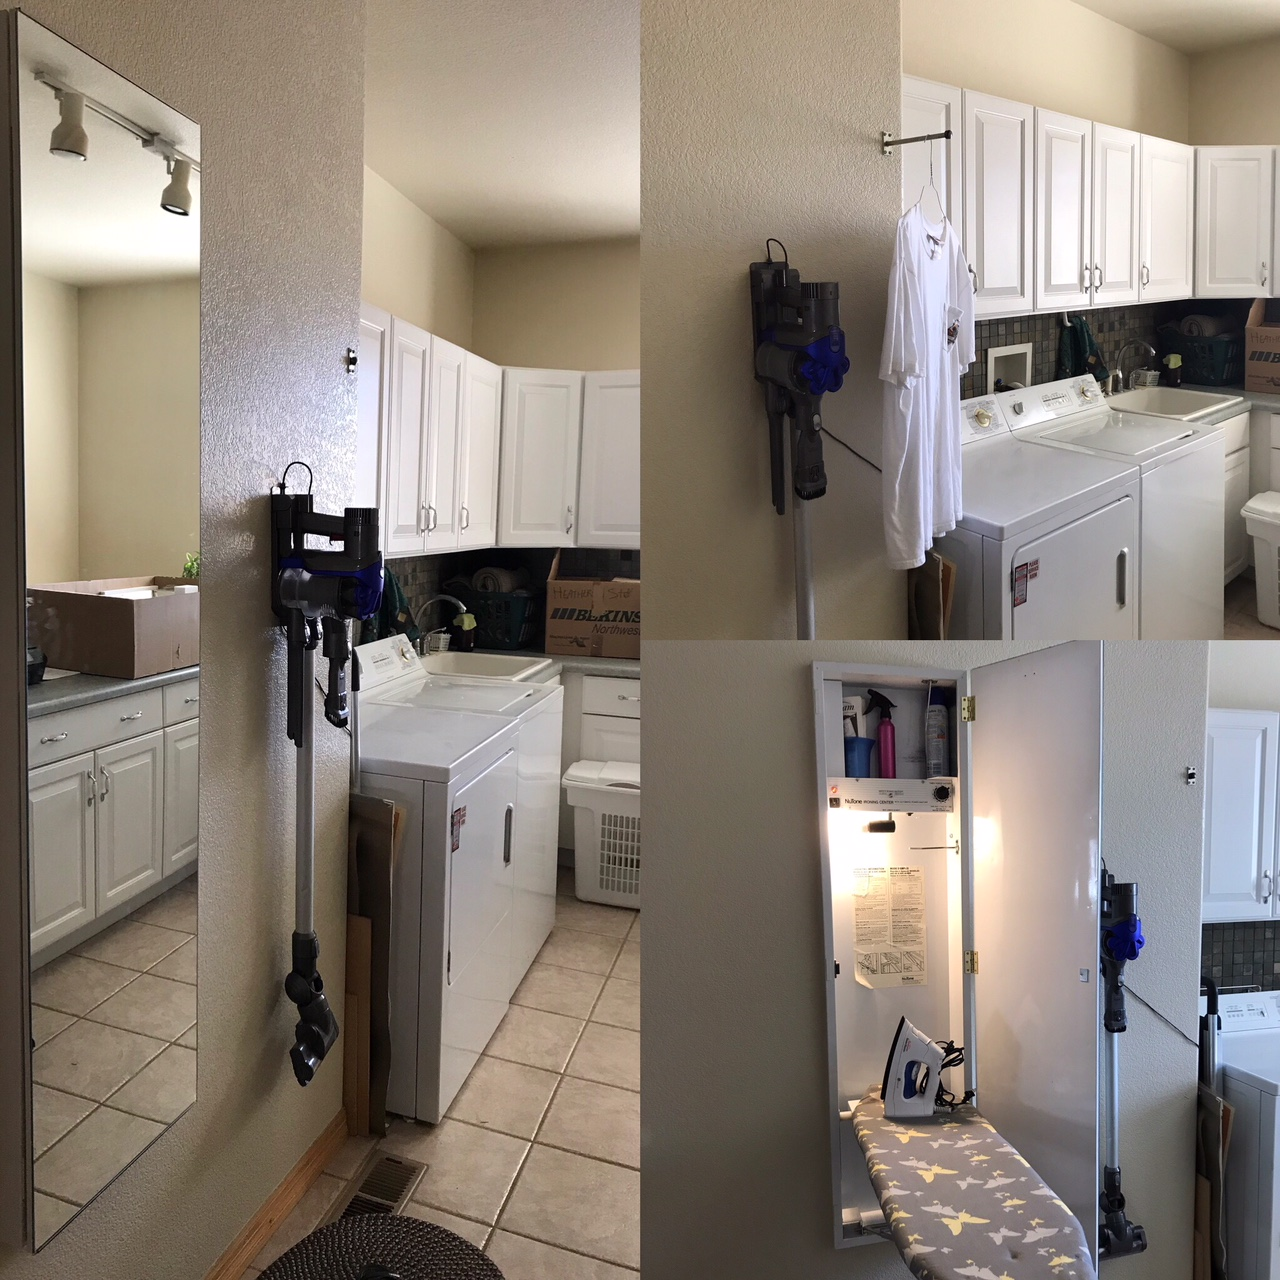 Marjean has an ironing station and hanging rod hiding in her laundry room.